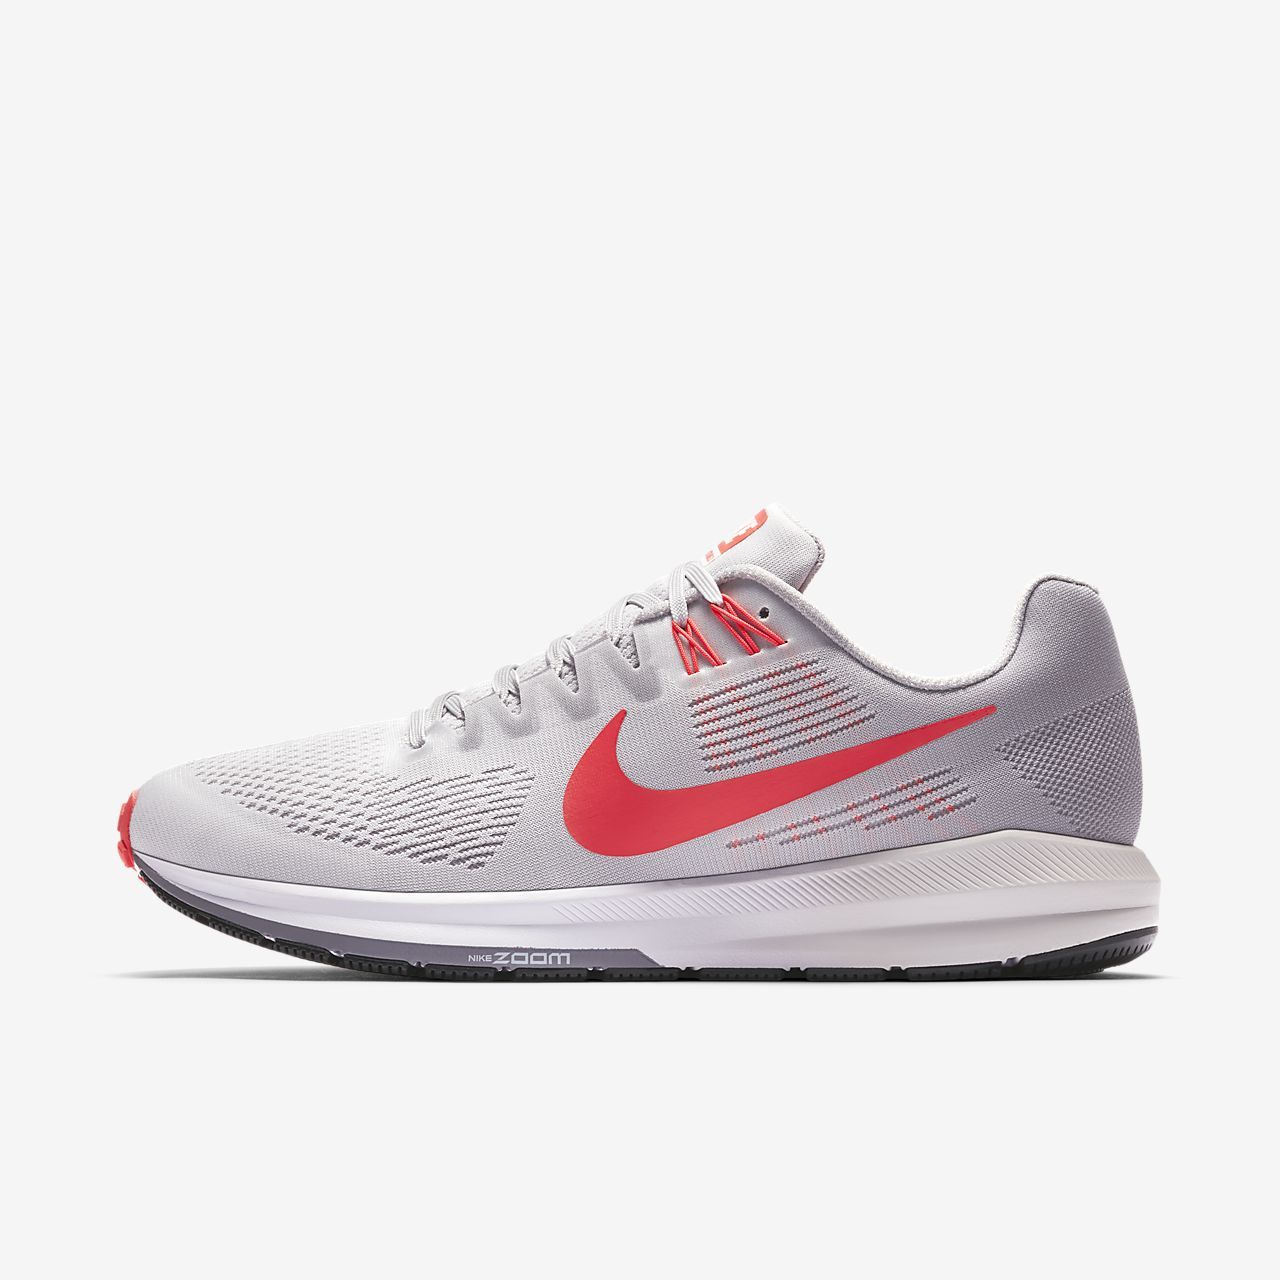 New Nike- Air Zoom Structure 21 Running Shoes Vast Grey/Atmosphere Grey/Gunsmoke